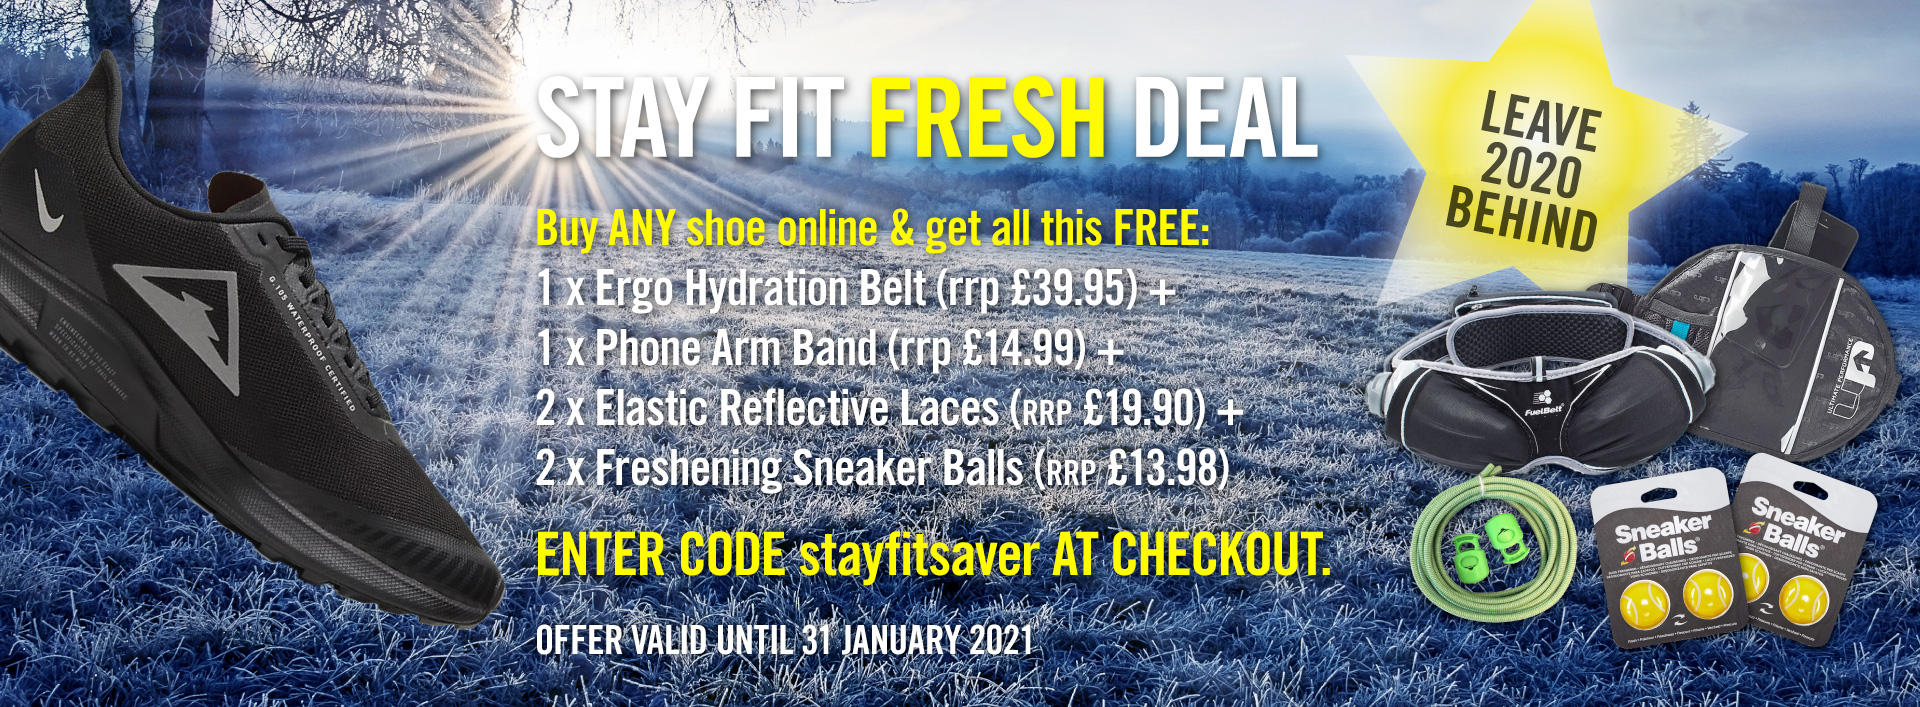 stayfirsaver offer - buy any shoe and get extras worth 90GBP free